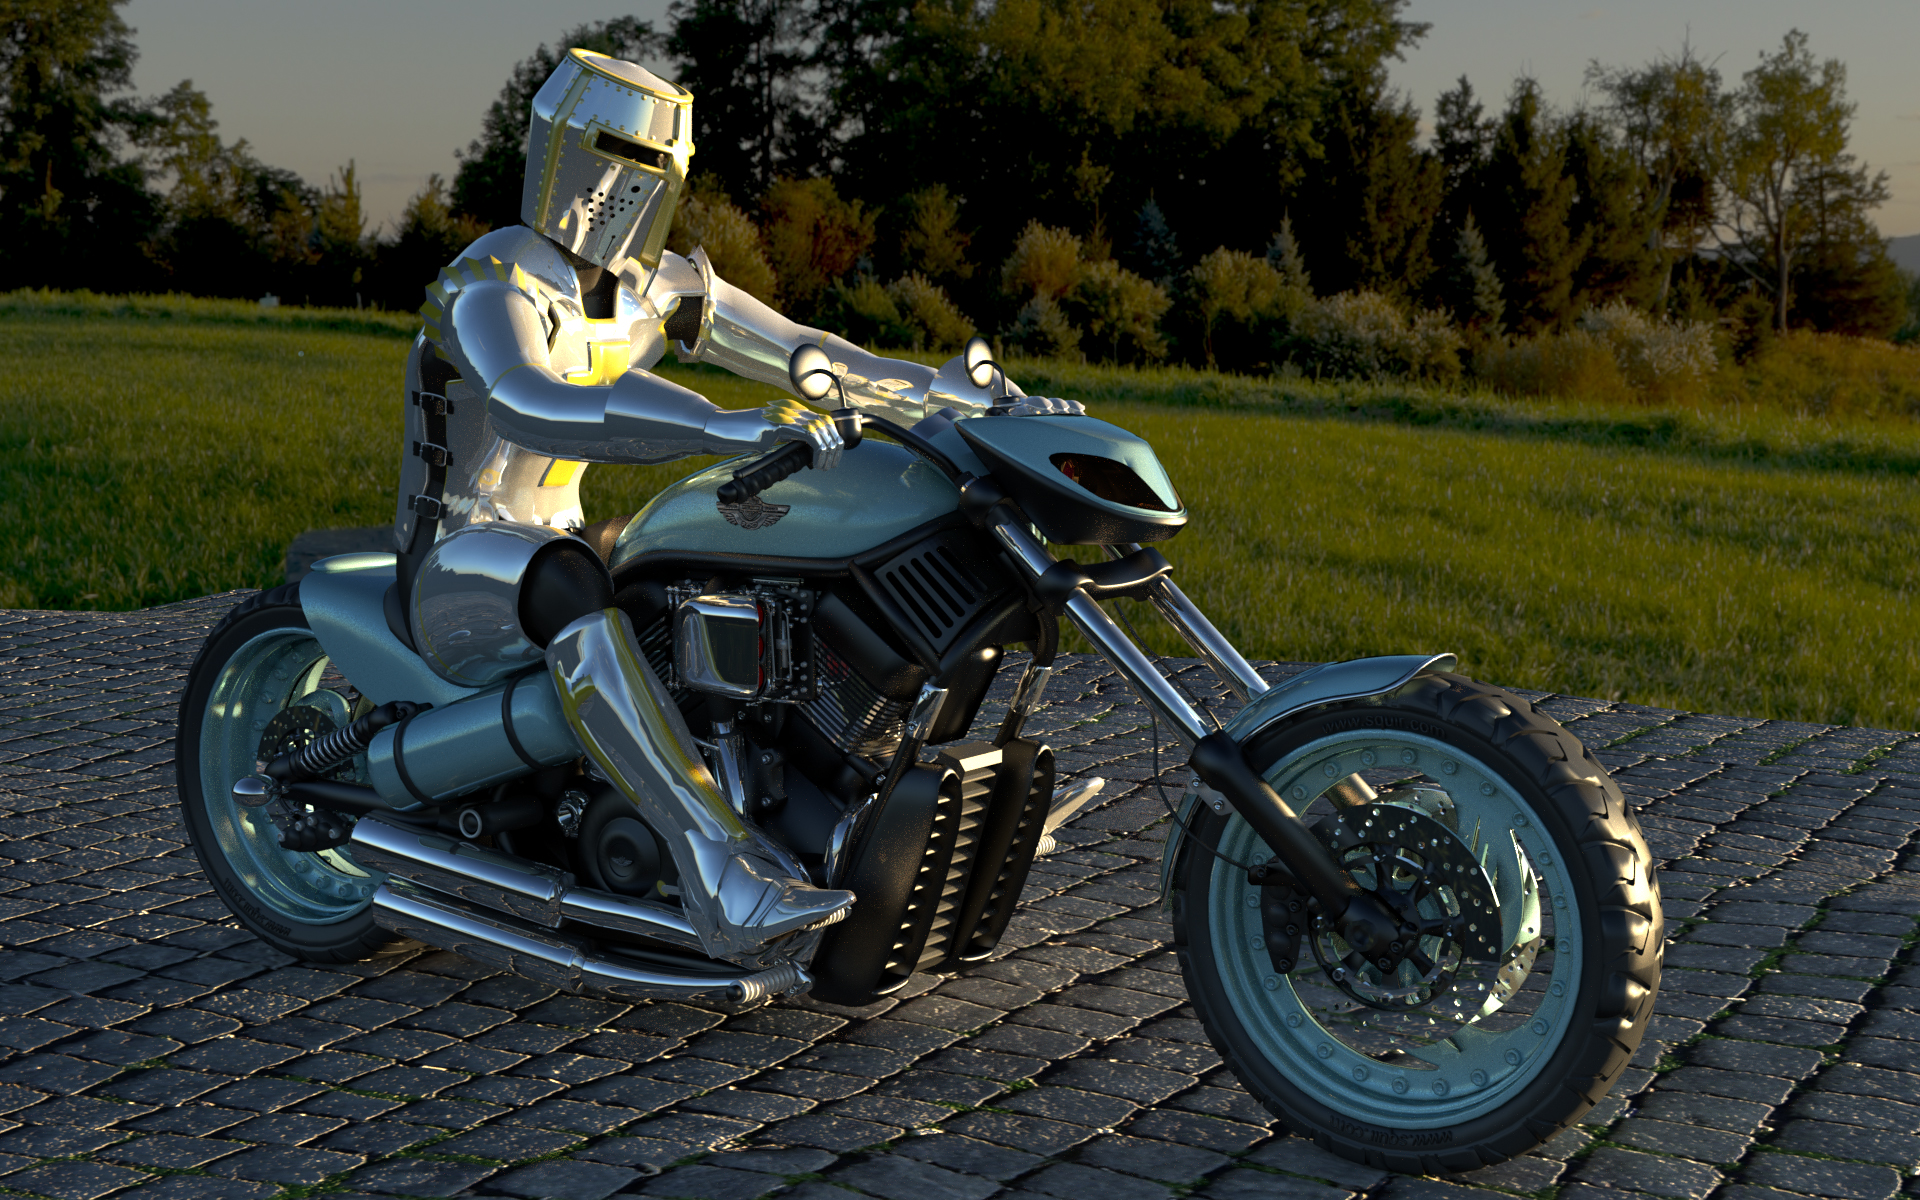 Lot of fun making this image. Good practice in creating smooth/hard edges. The glossy textures and a 10K HDRI makes plenty of noise and even at 5000 samples it's still noisy. More to do on this. Different Knights and bikes to build next.